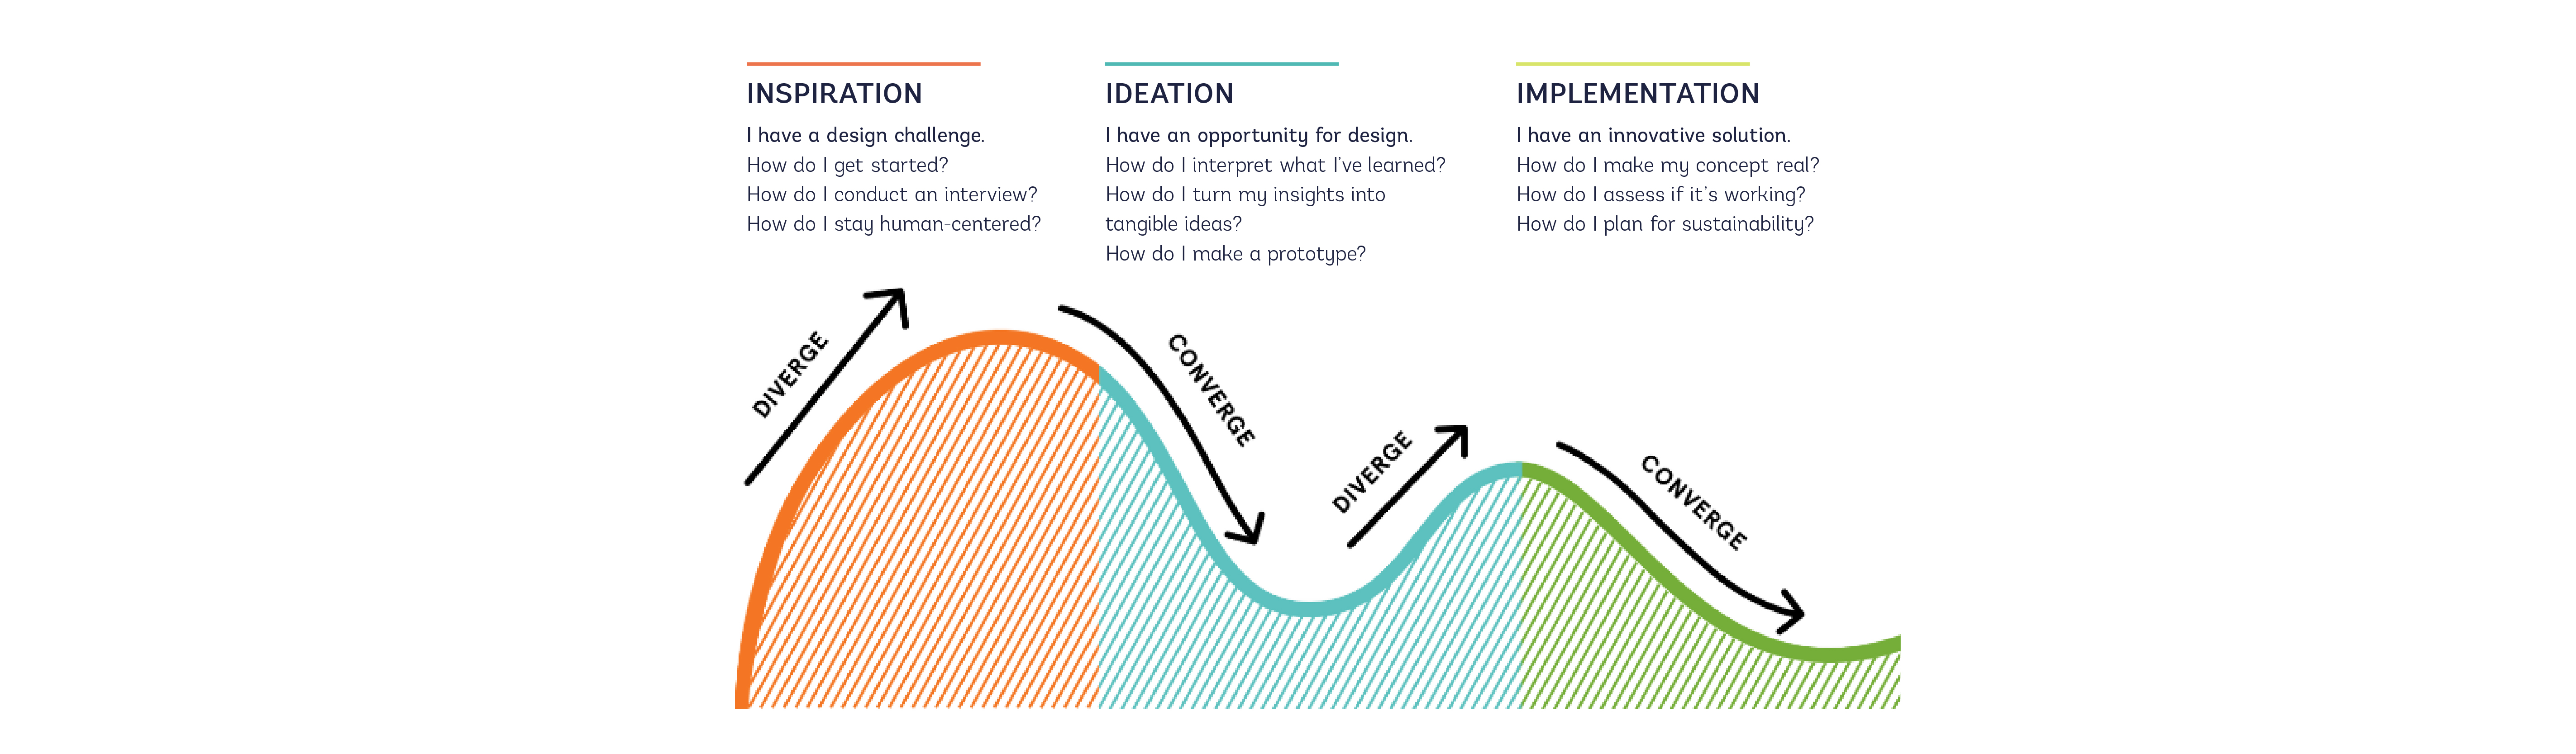 image explianing design thinking process